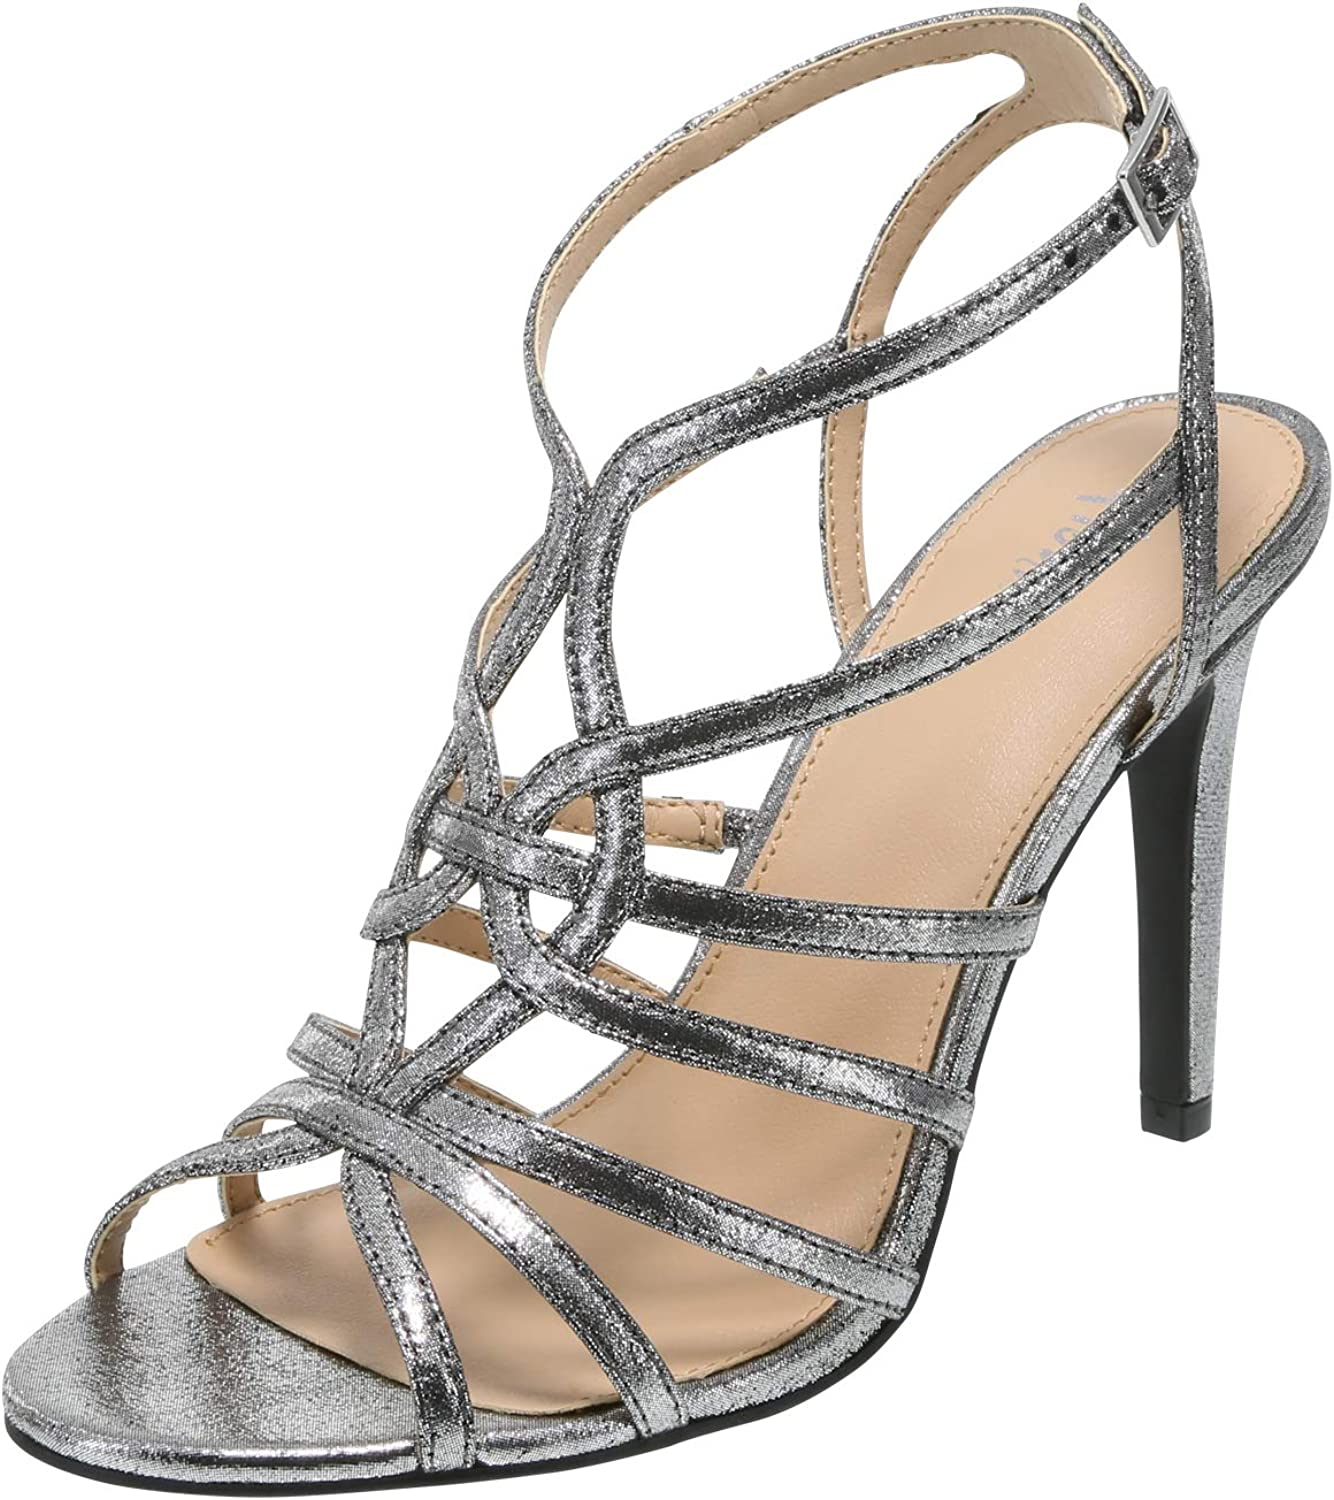 0673b4d9ec Women's Strappy Heel Fioni Lia ztjstk7899-New Shoes - www ...